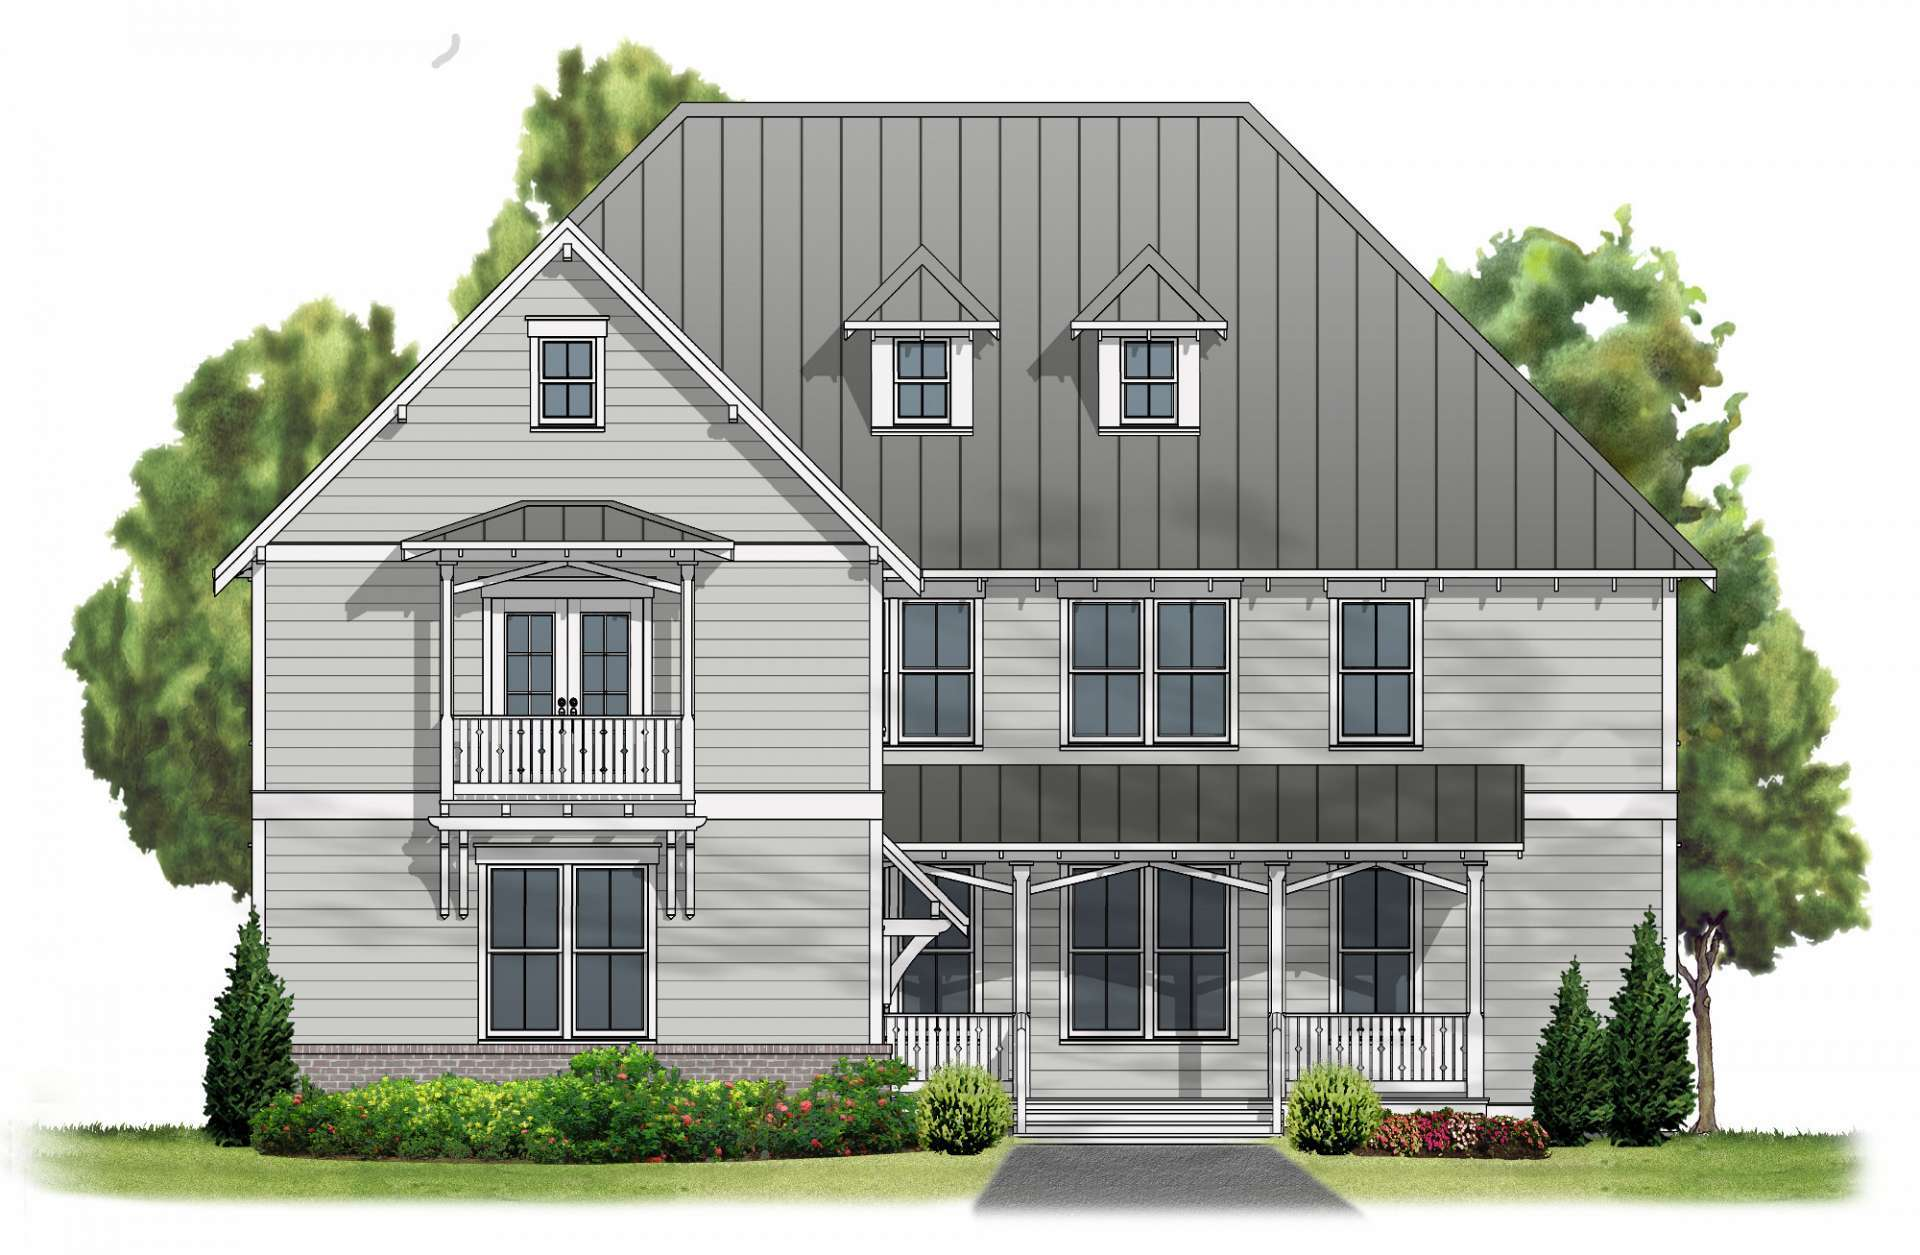 Single Family for Active at Trussville Springs - Elk River A 6489 Spring Street Trussville, Alabama 35173 United States